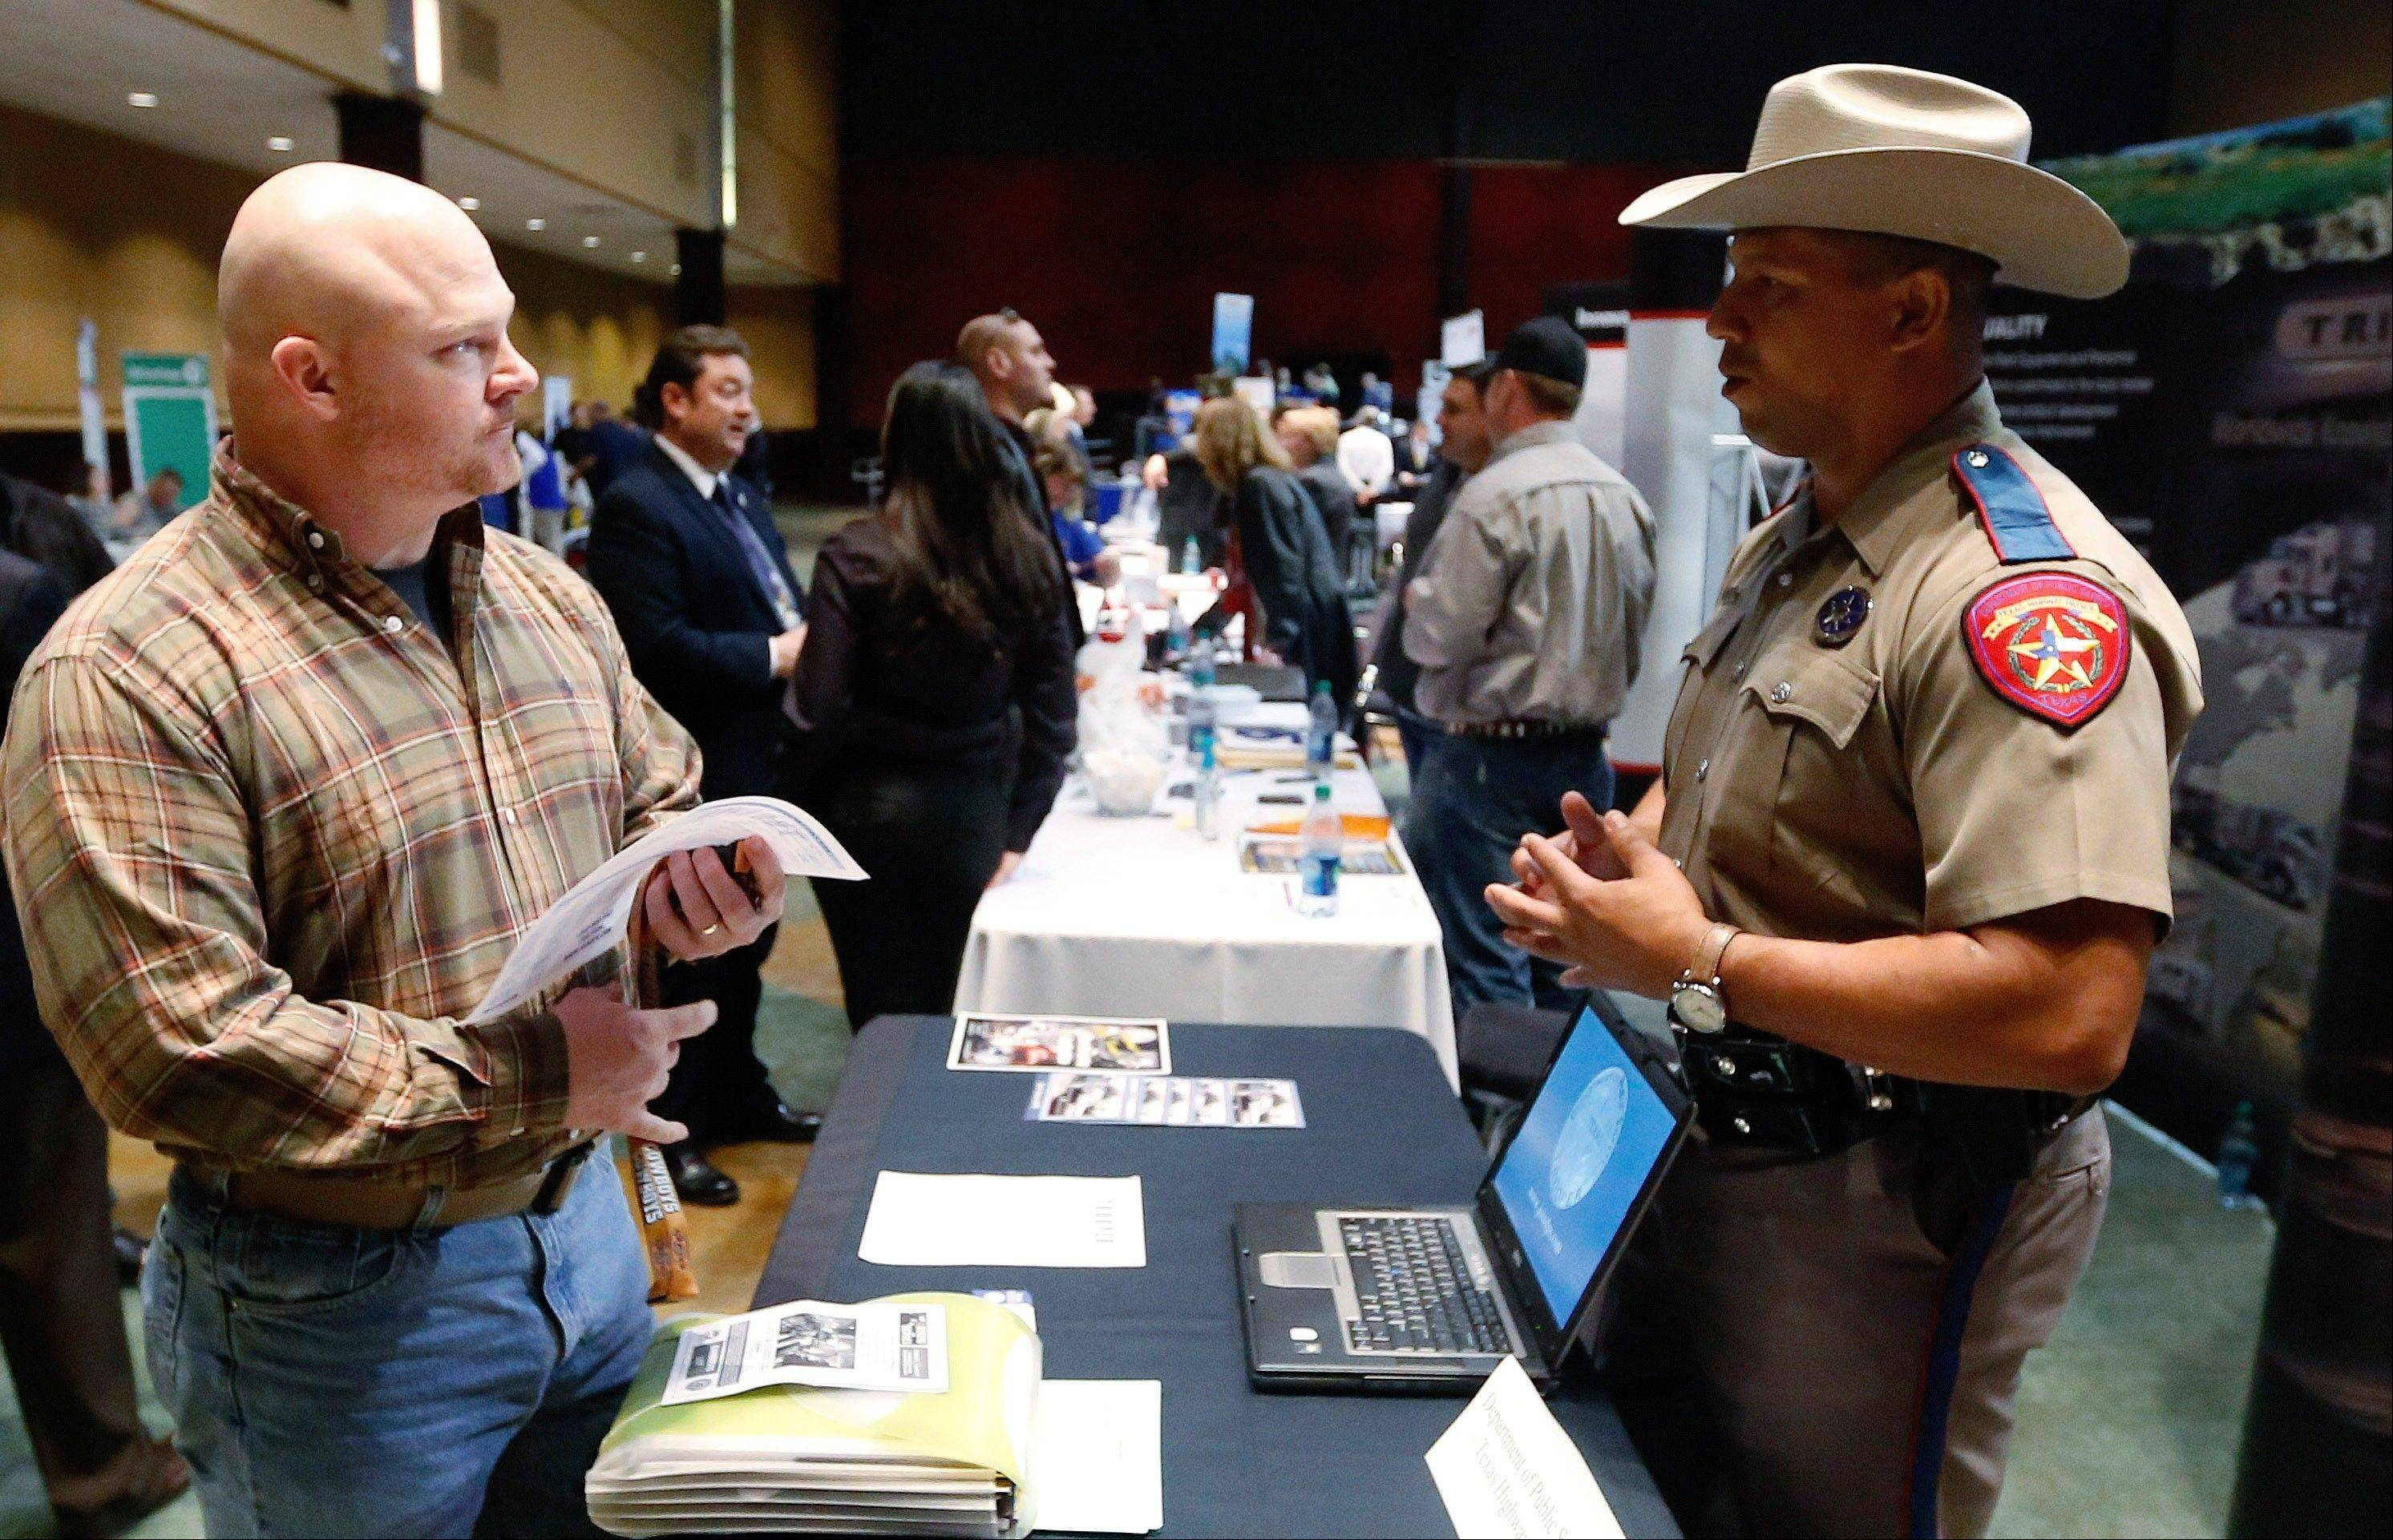 Job Seeker Brett Culver, left, of Newalla, Okla., formerly of the Air Force, talks with Texas state trooper Deon Cockrell, right, at a Recruit Military job fair in Oklahoma City.